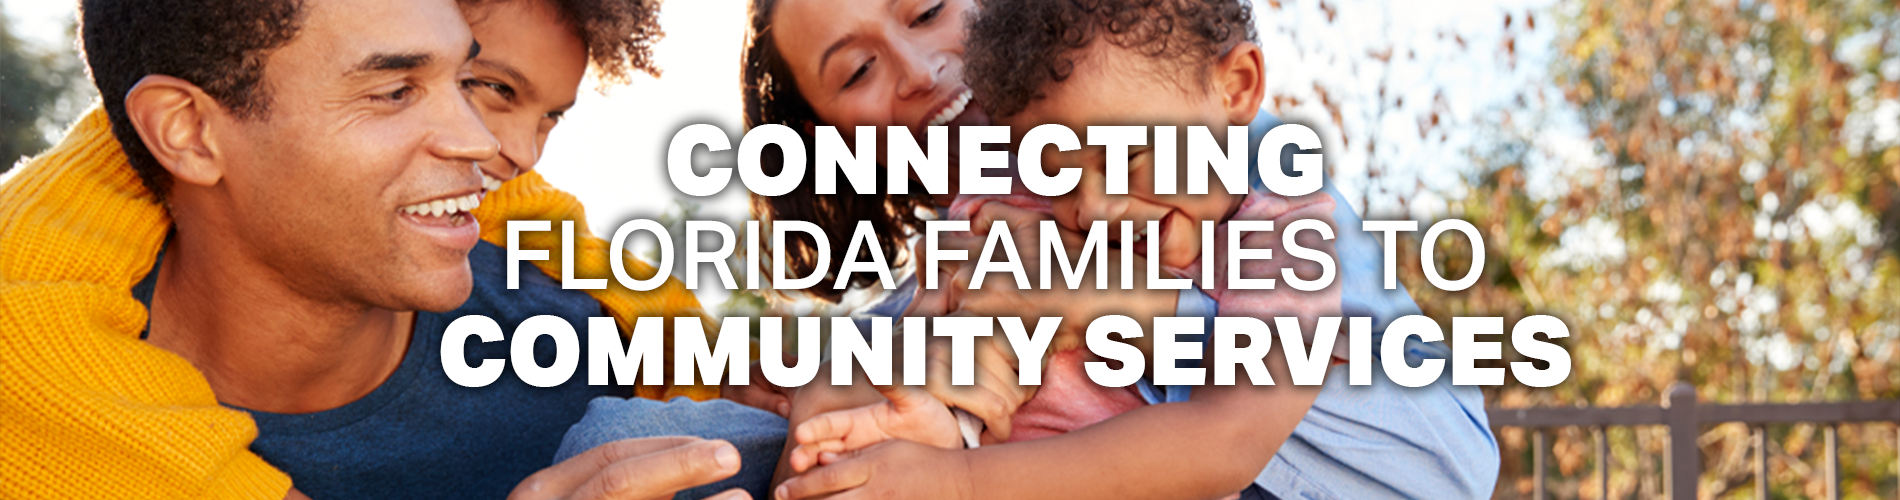 Connecting Florida Families to Community Services.  Image of a family